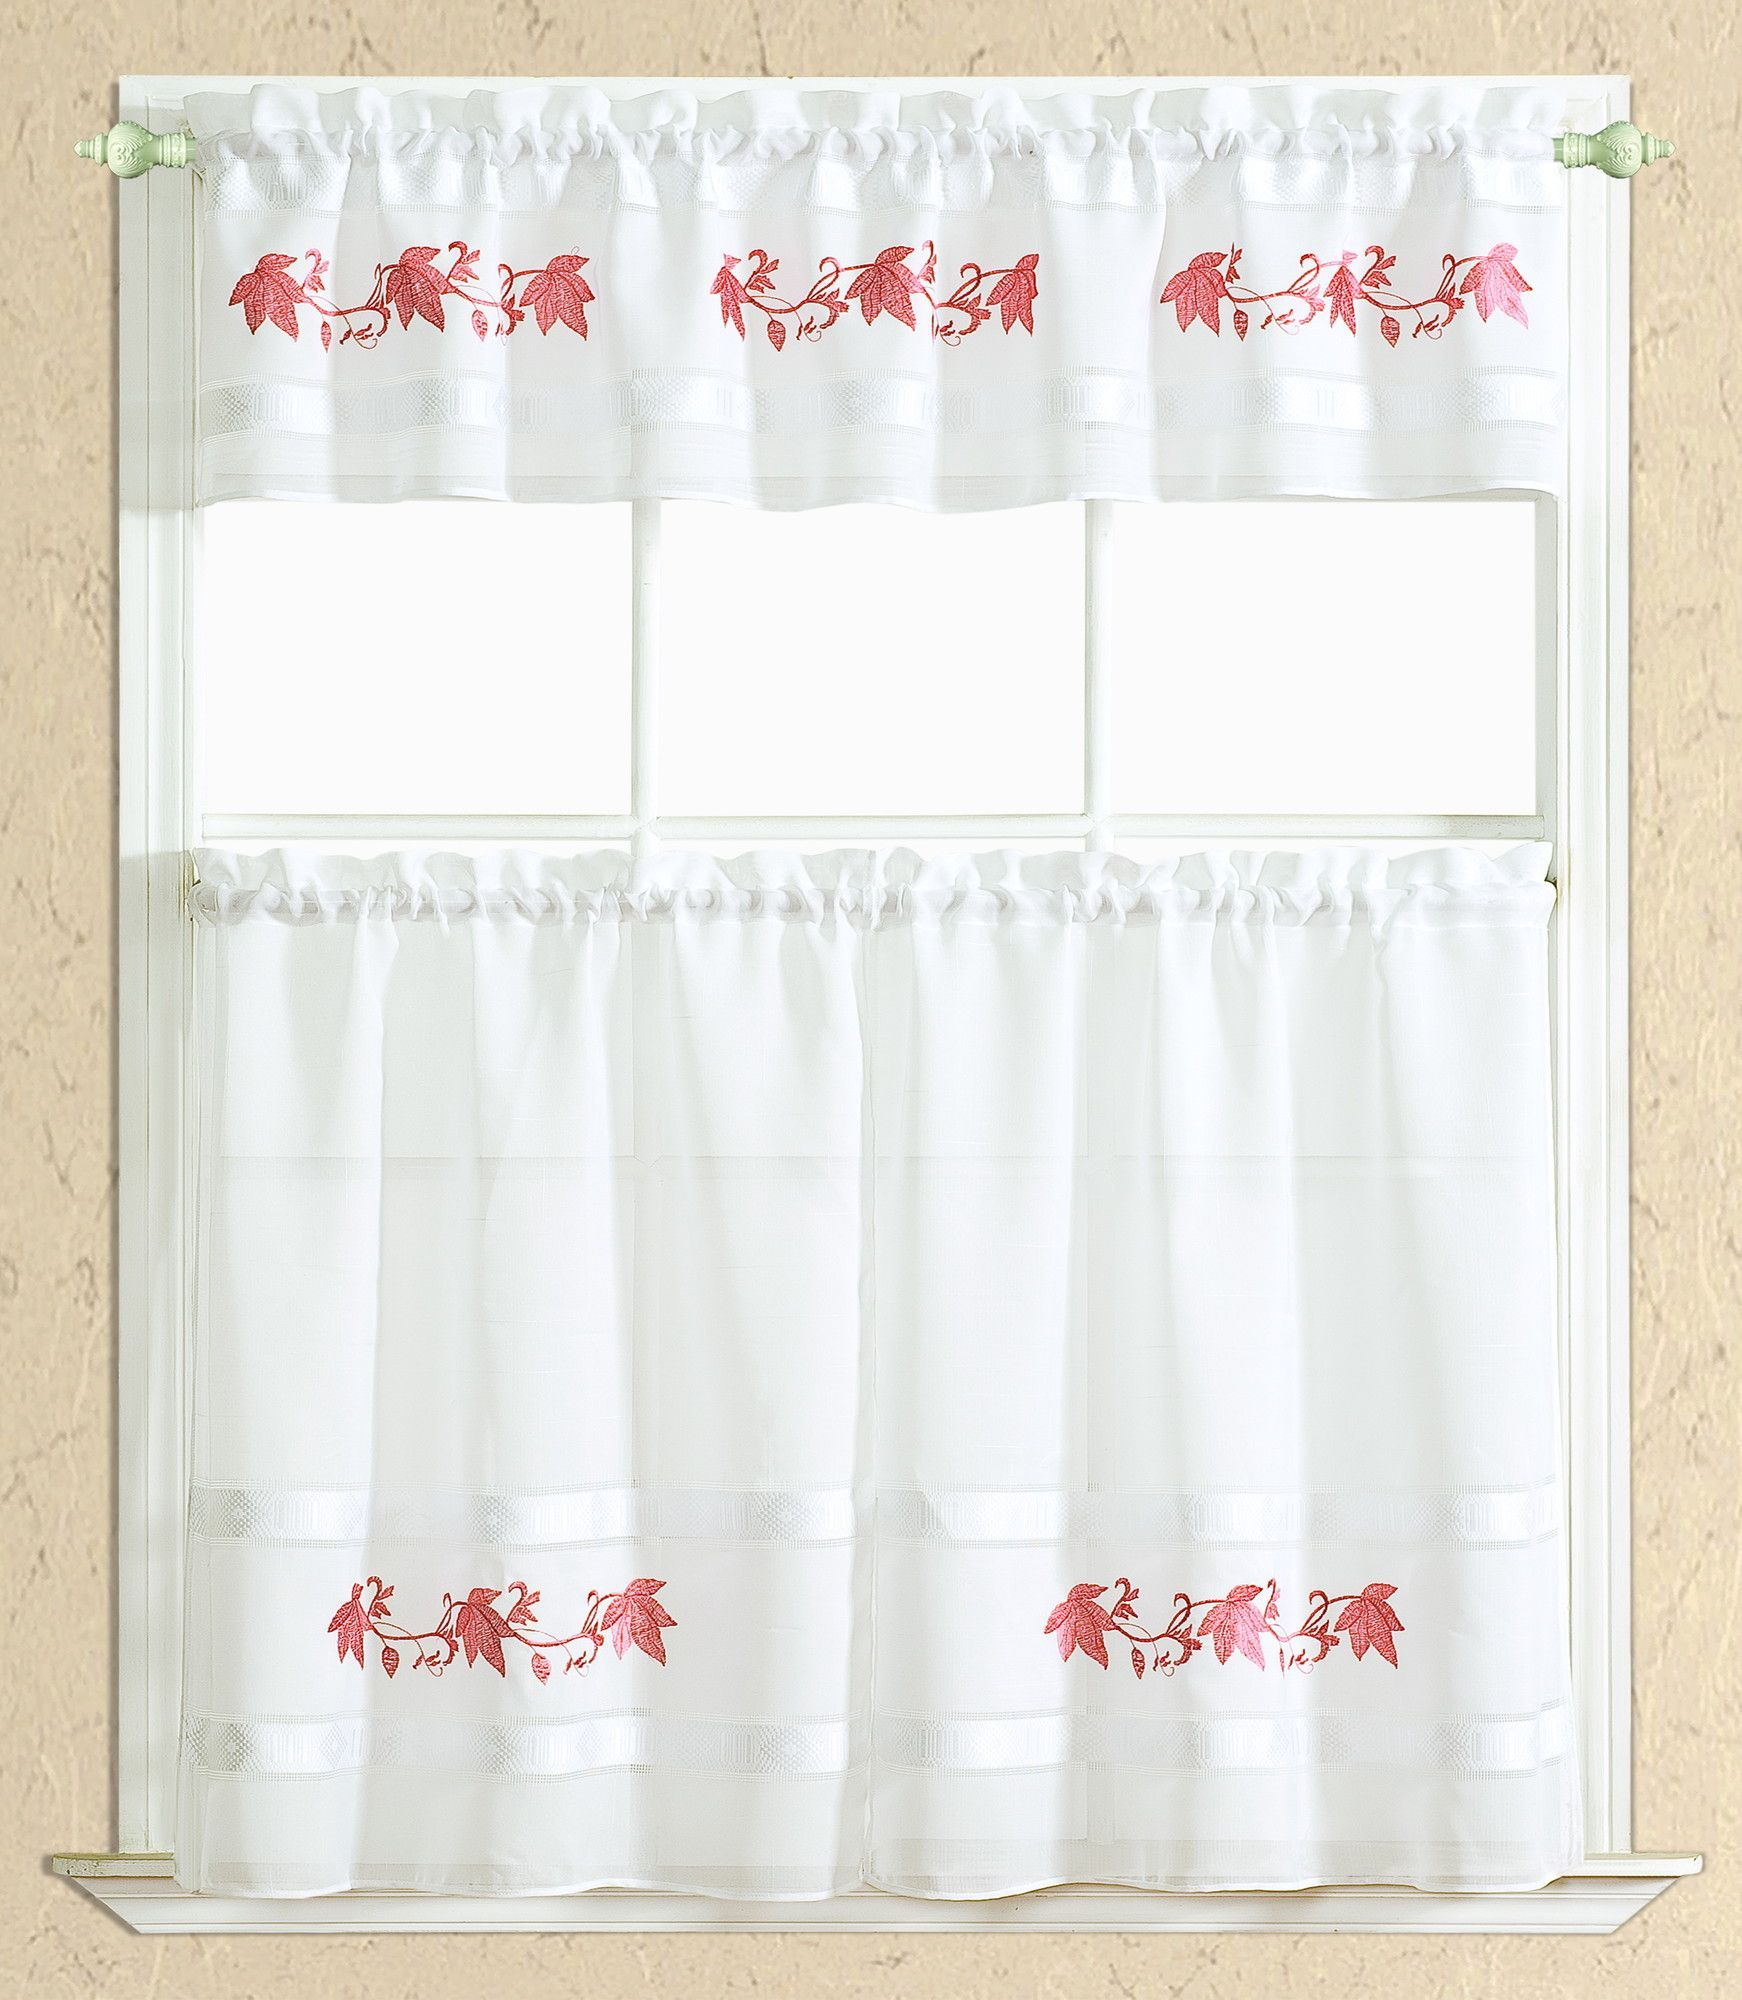 Beautiful Spring Cappuccino Kitchen Curtain Set Valance 60 X 14 Two Tiers 30 X 36  White Red